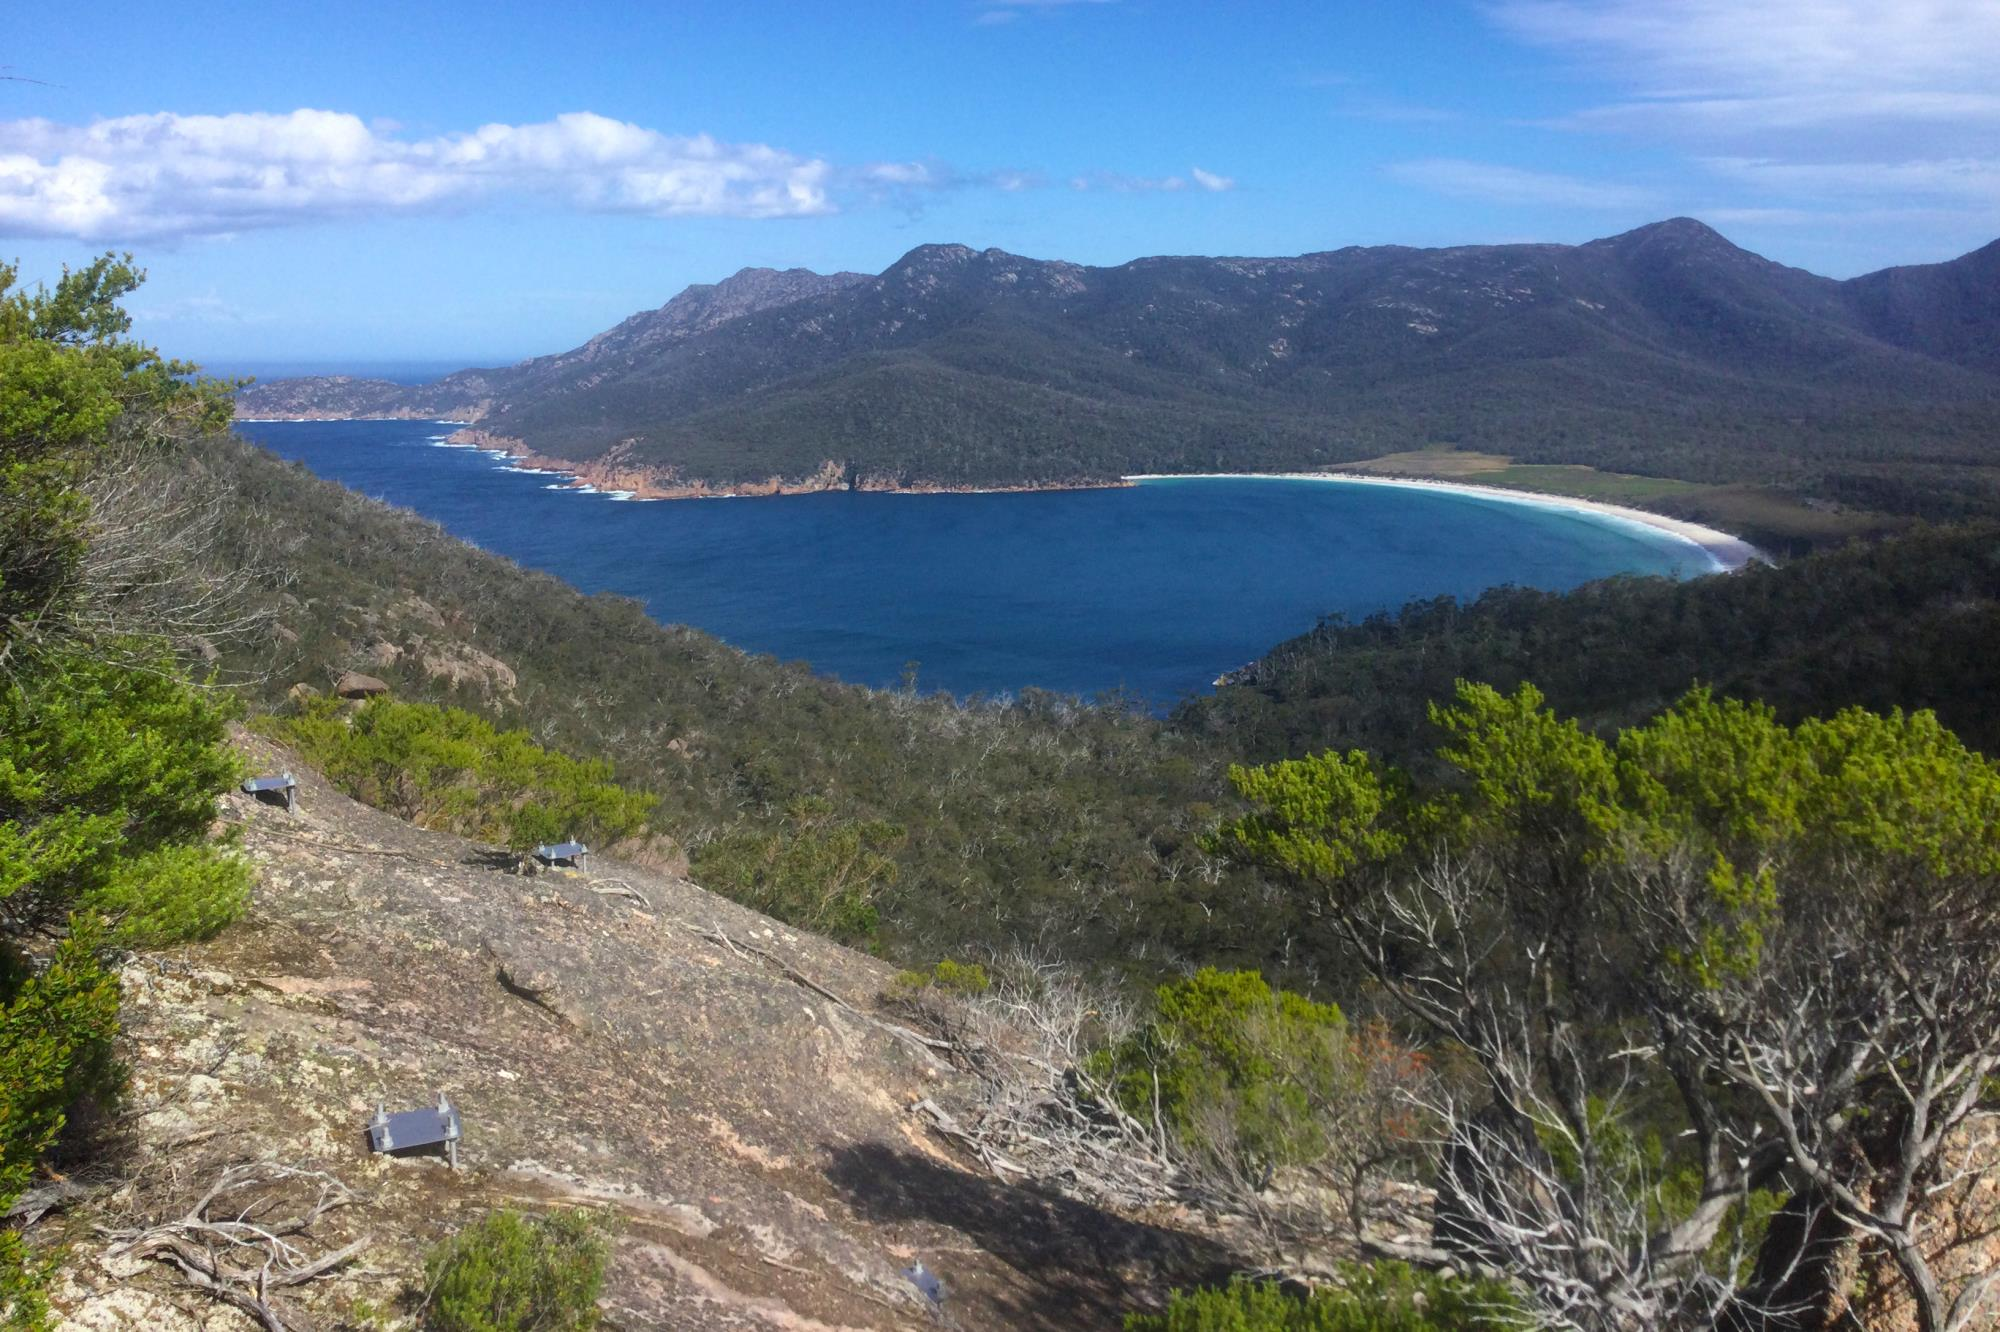 Metal fottings embedded in granite are part of the new walkway works. This image shows the footings with a view of beautiful Wineglass Bay on a fine sunny day in the background.